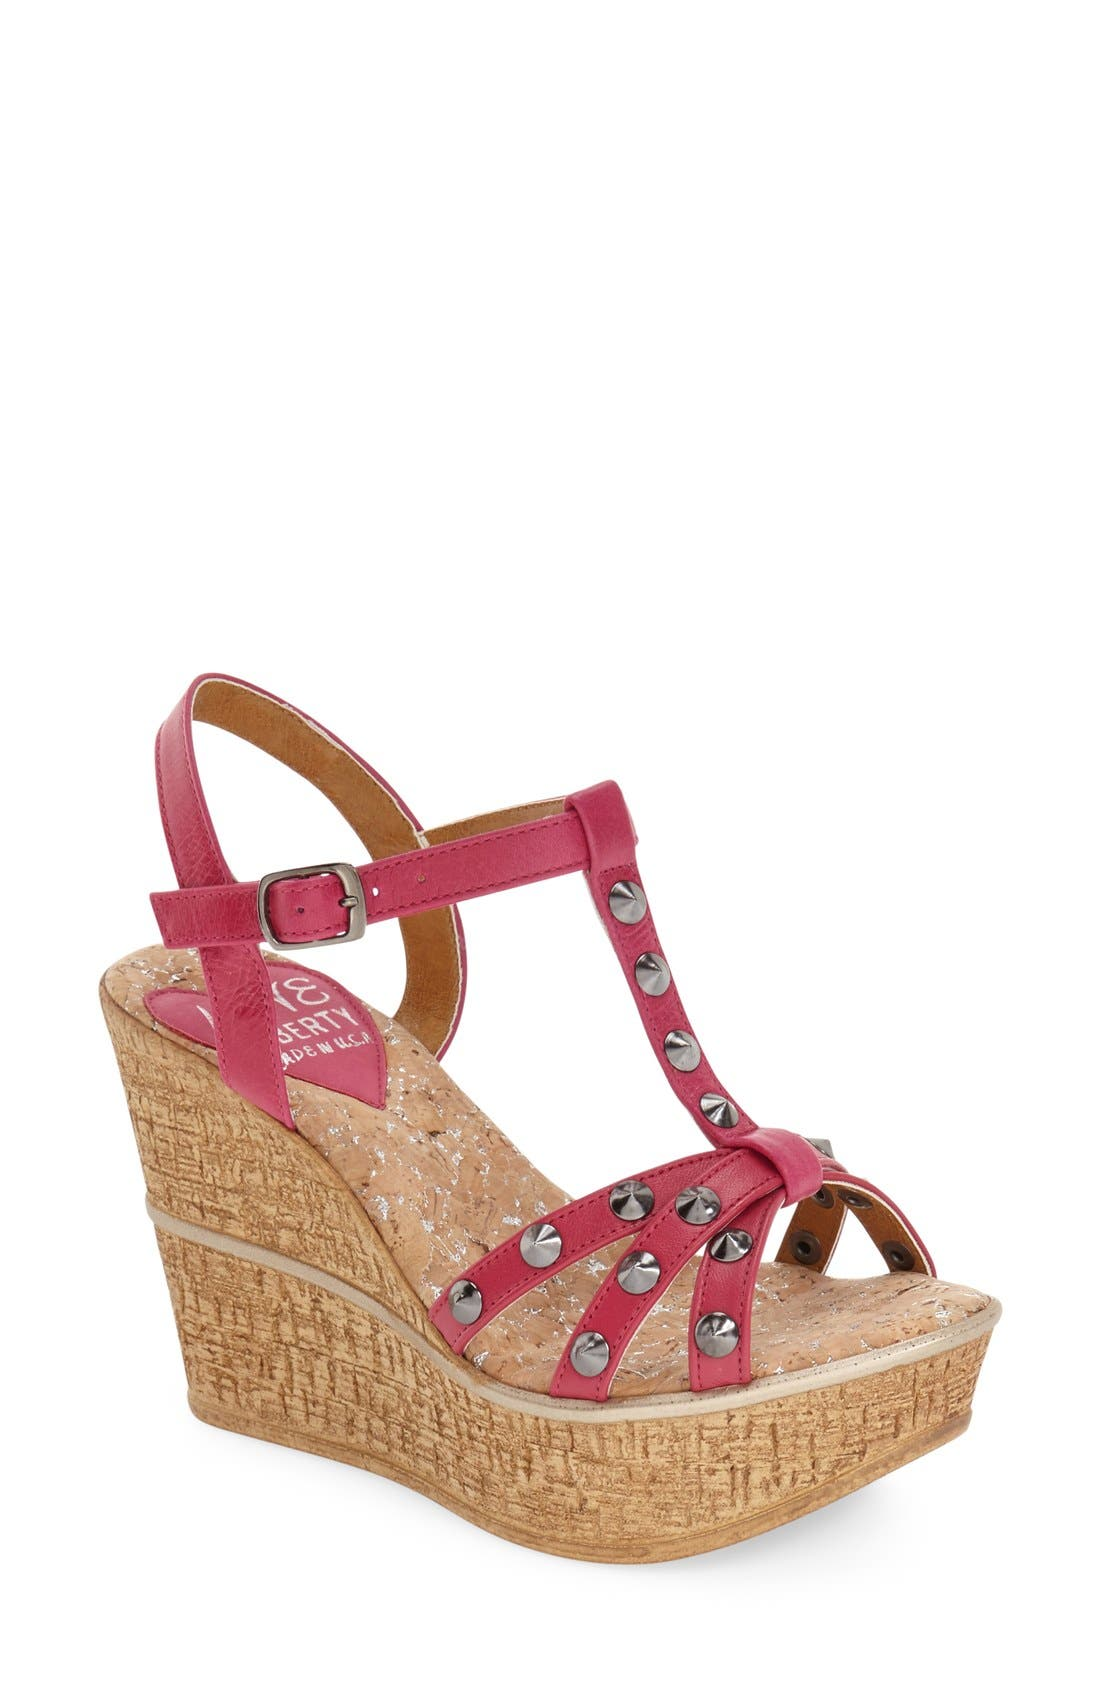 LOVE AND LIBERTY Violet Spiked T-Strap Wedge Sandal